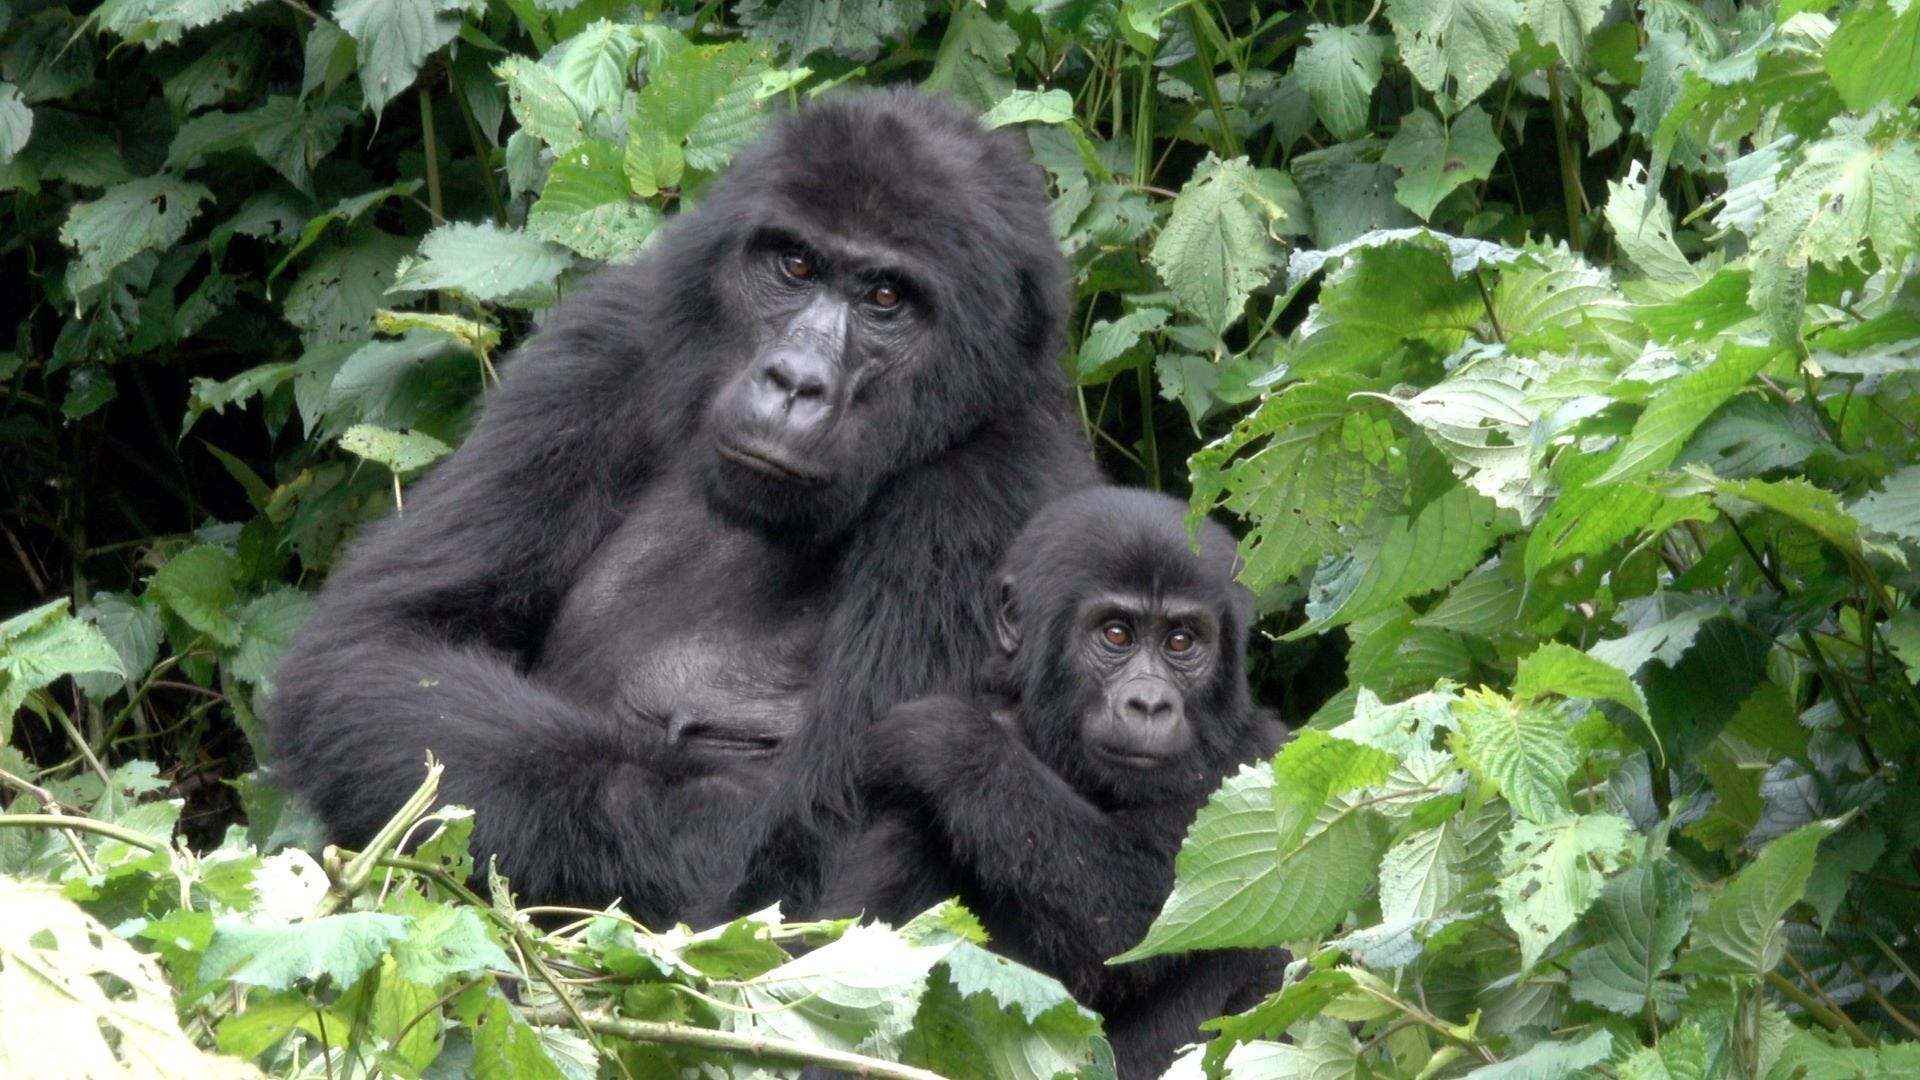 A mother and baby gorilla in the jungle.